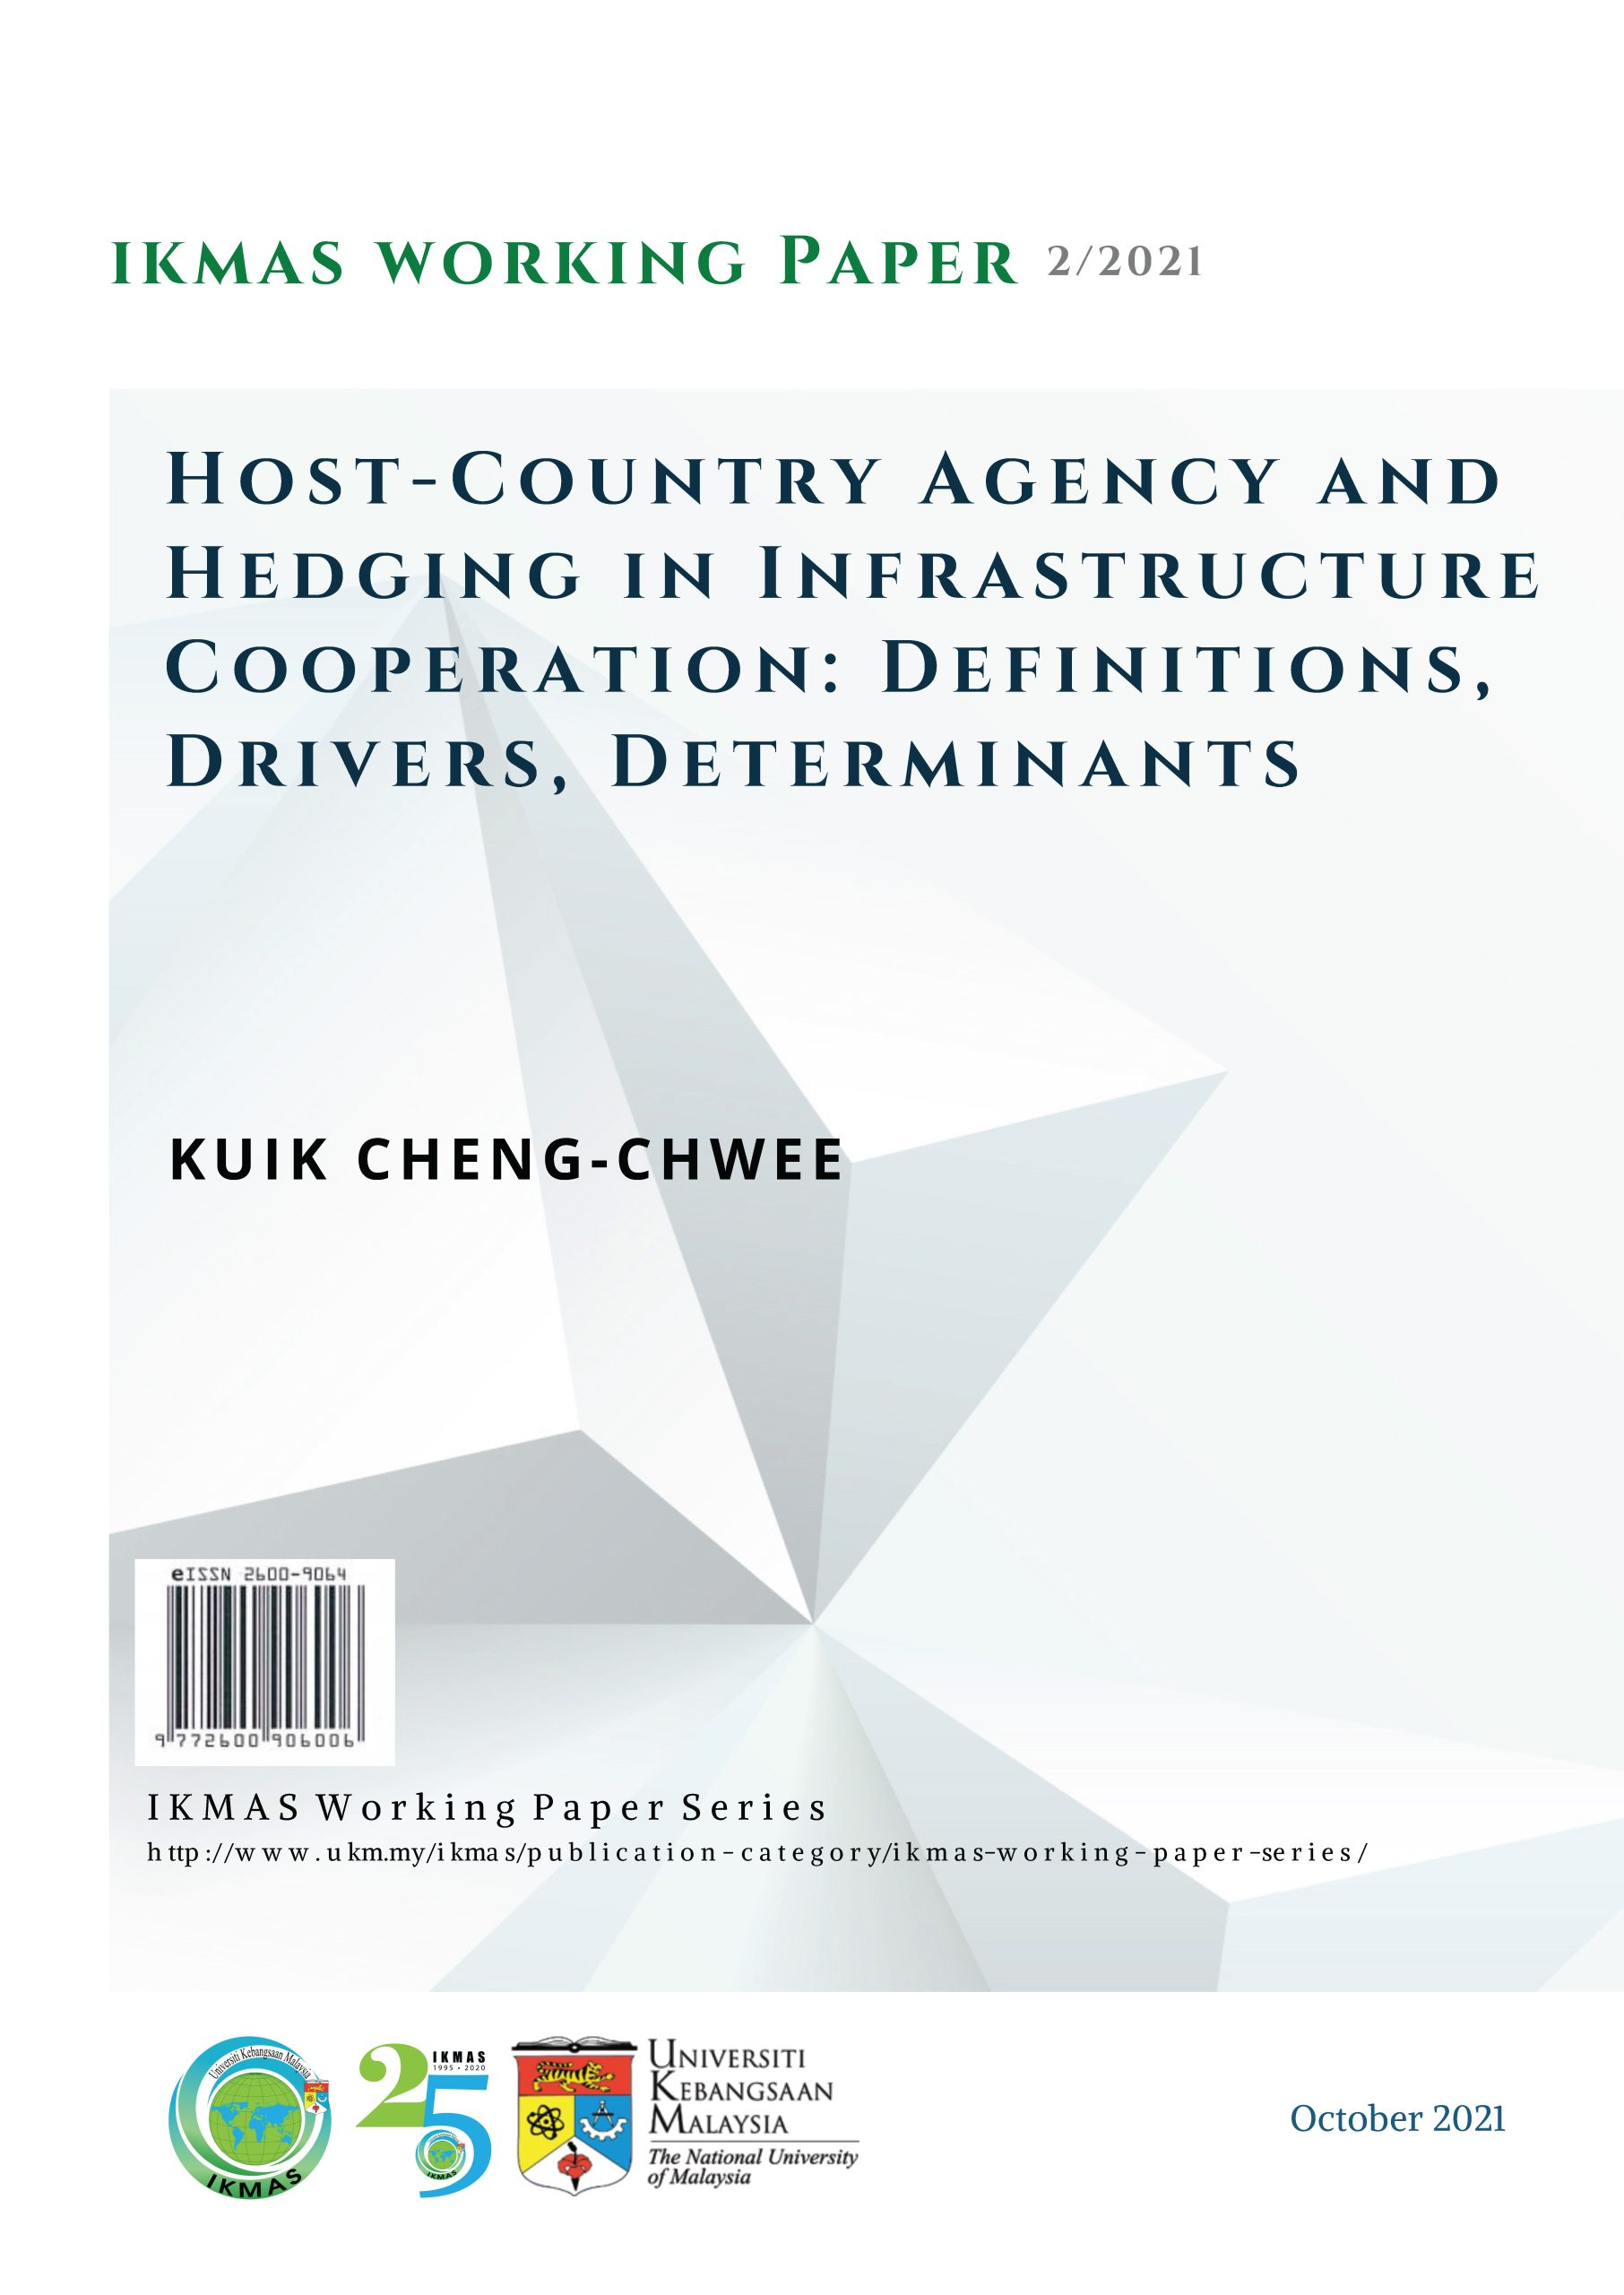 Host-Country Agency and Hedging in Infrastructure Cooperation: Definitions, Drivers, Determinants